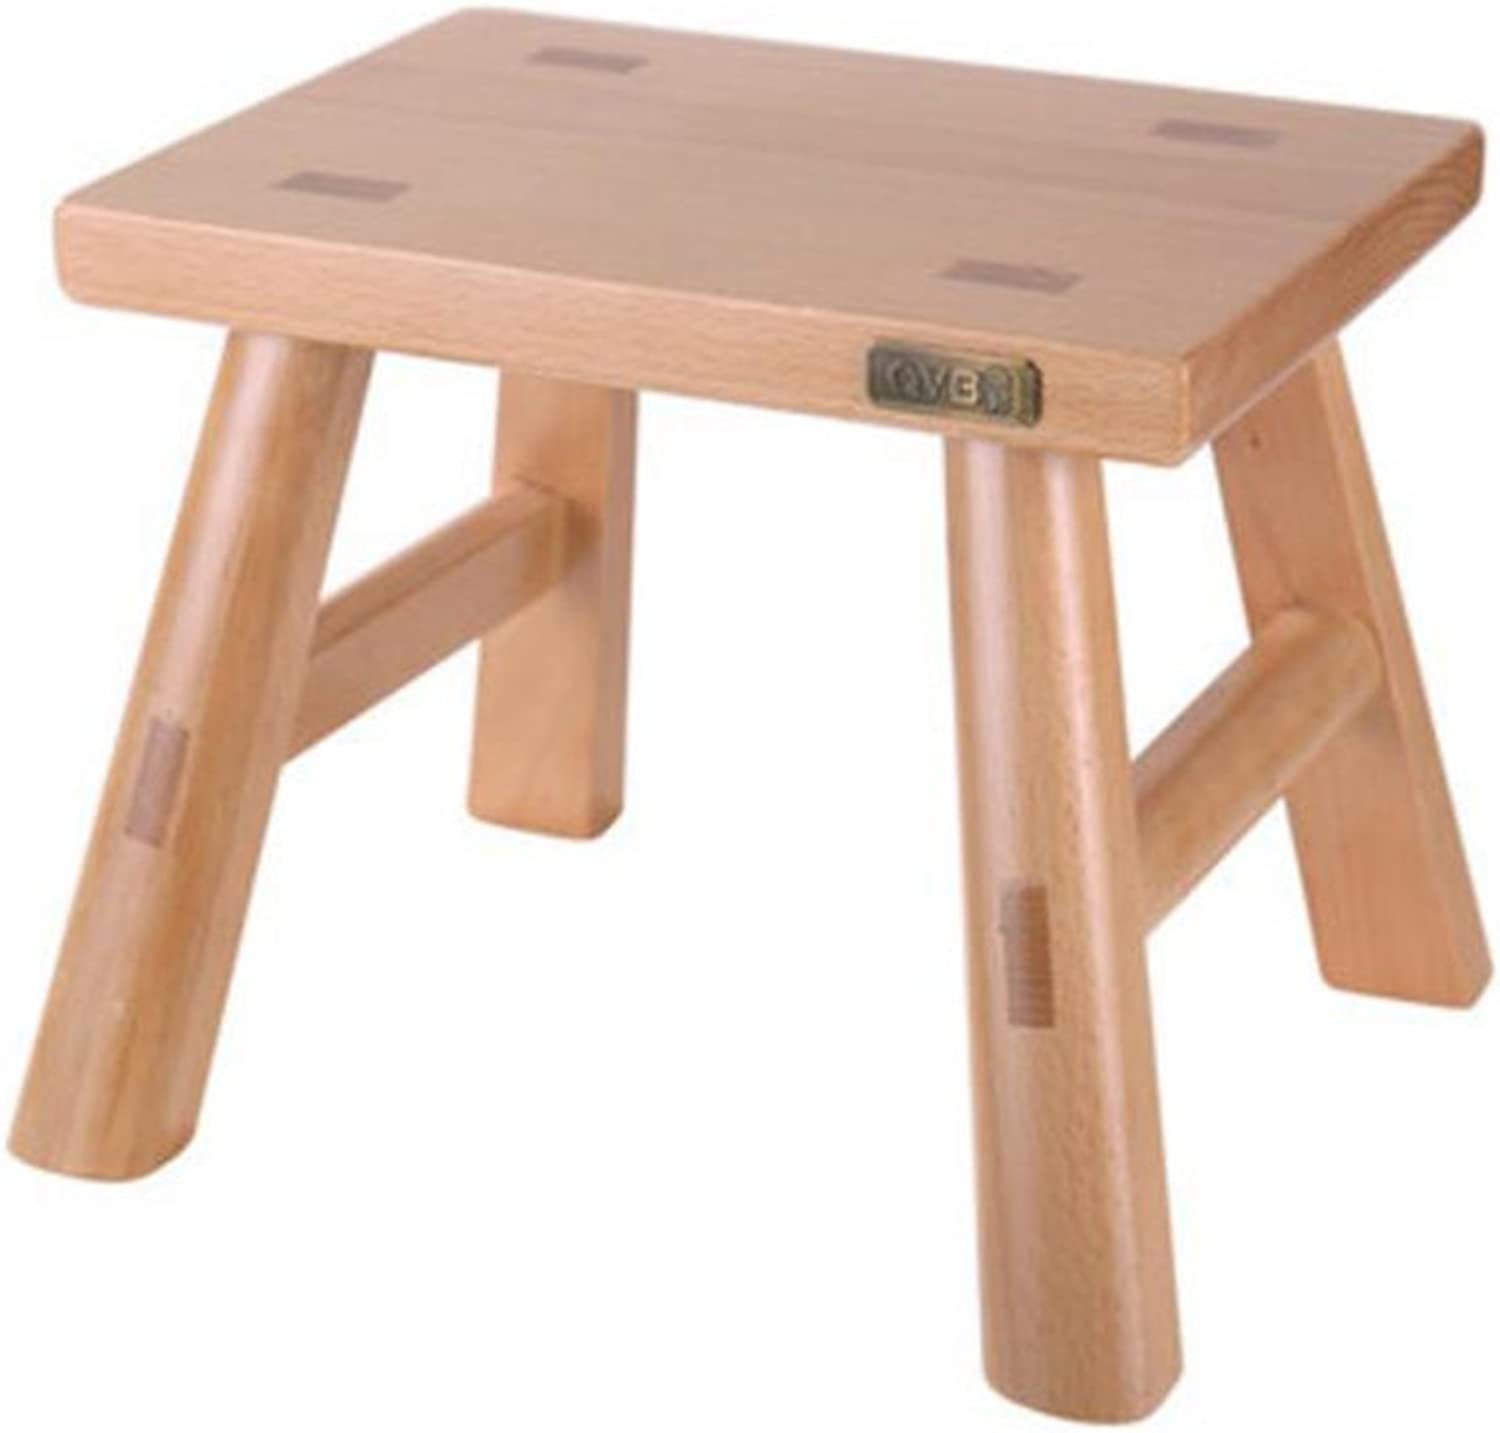 Stool Solid Wood Low Stool Change shoes Bench Living Room Sofa Stool Modern Simple Household Square Stool Wholesale Tenon Small Stool Wooden Bench Adult 28x20x24cm